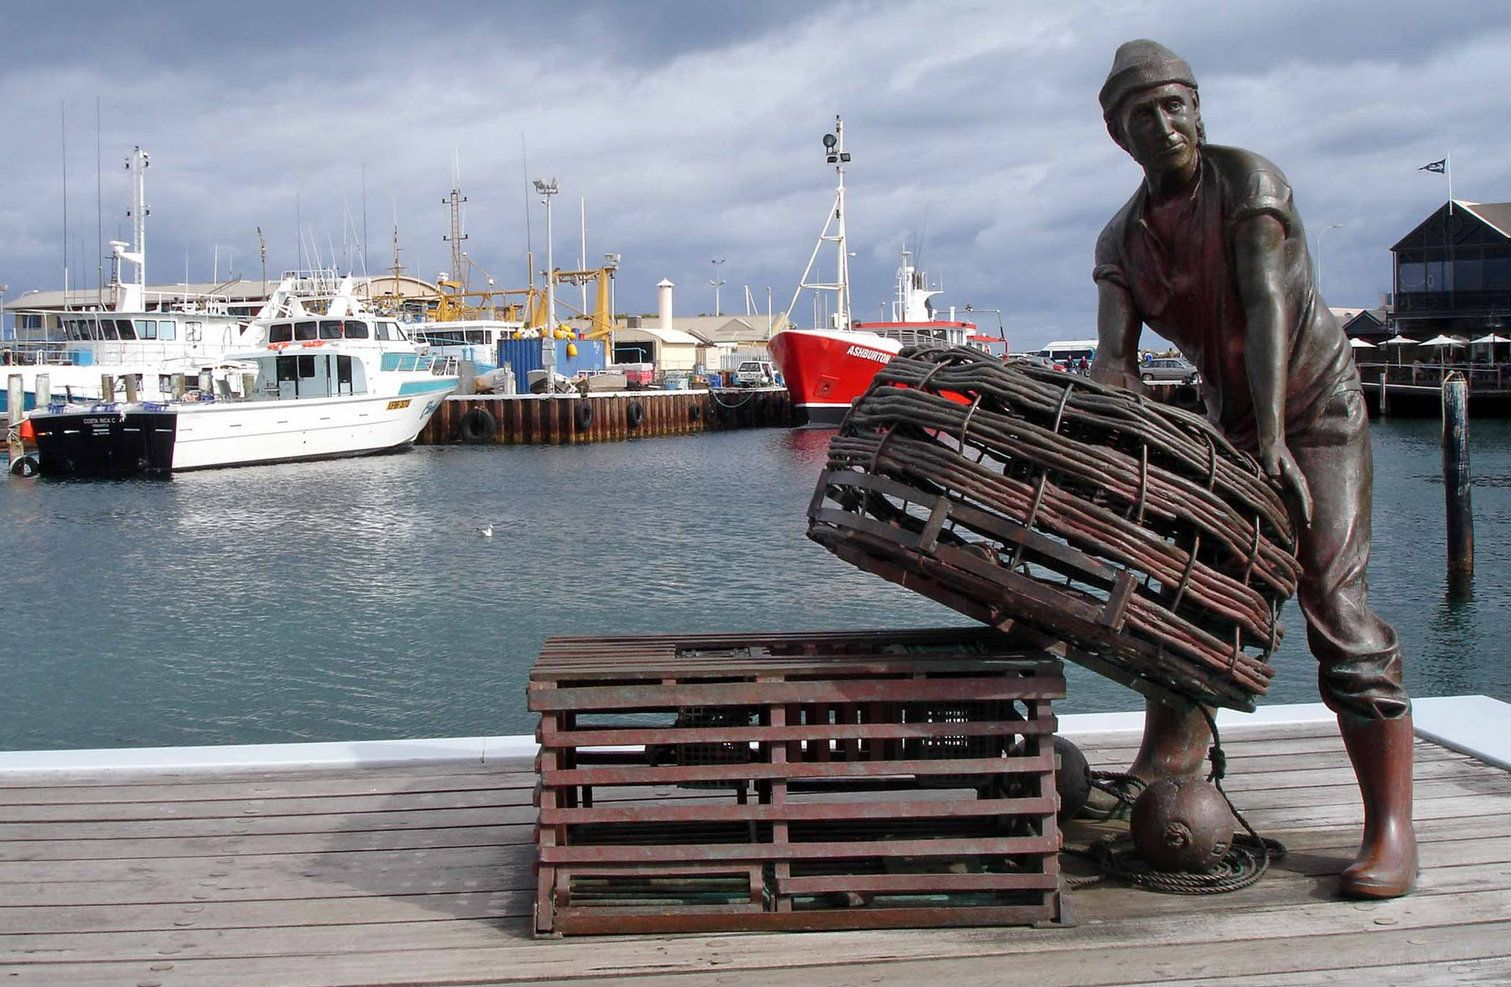 Fremantle Fishing Boat Harbour, Western Australia (With